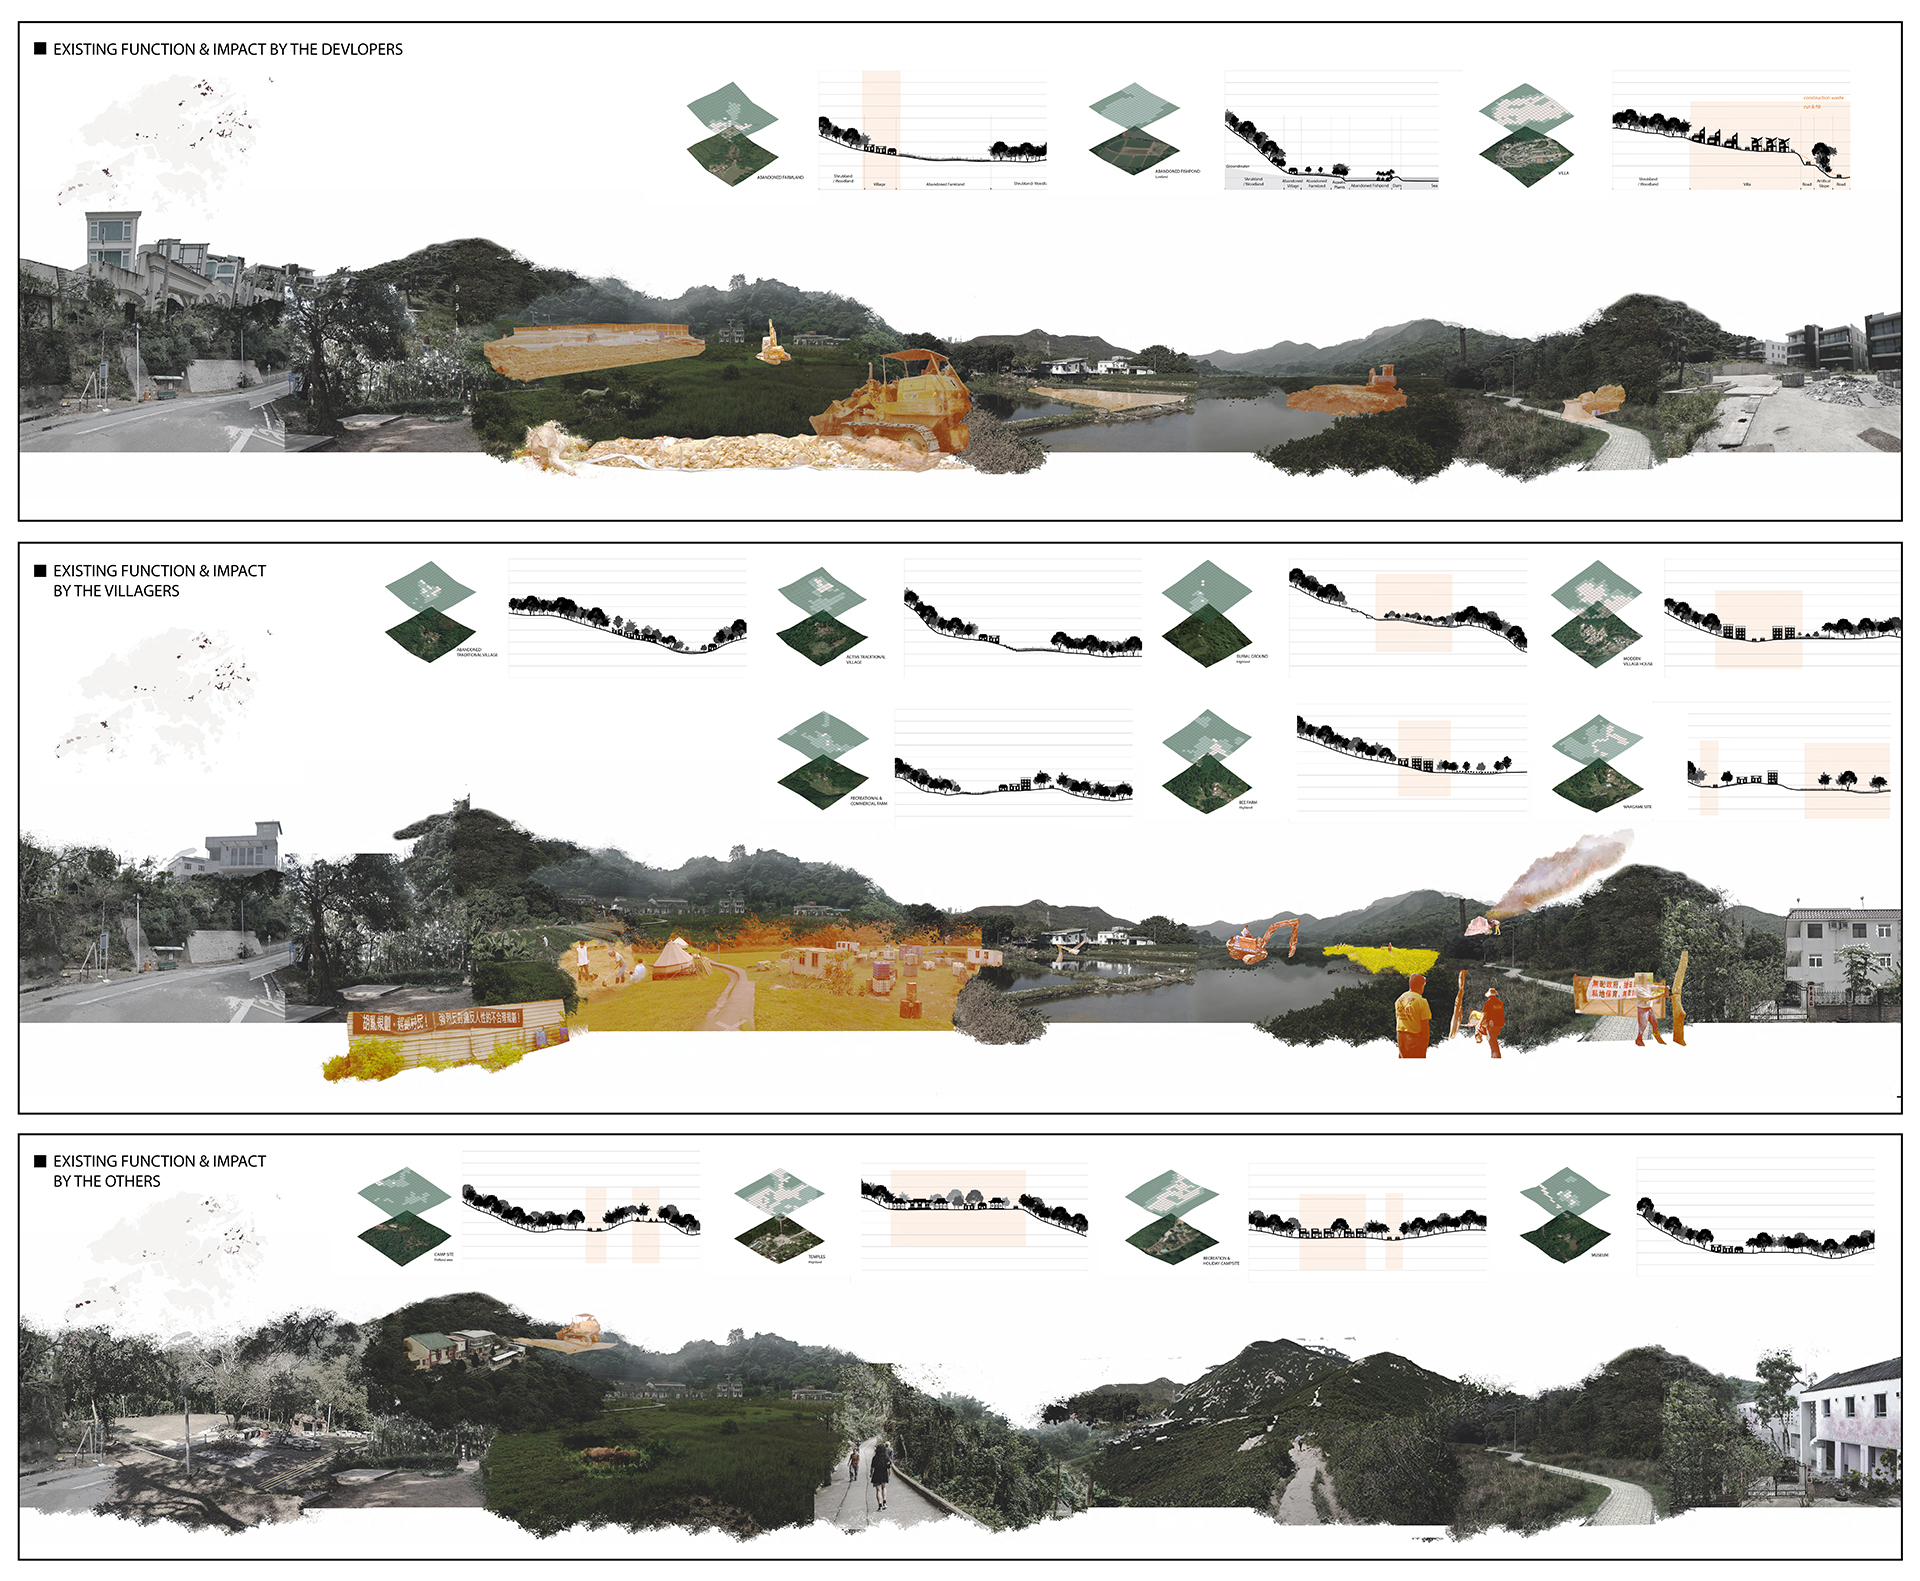 Enlarge Photo: Function & Impacts by the Developers, Villagers, and others. By KWONG Wai Lam Rae.